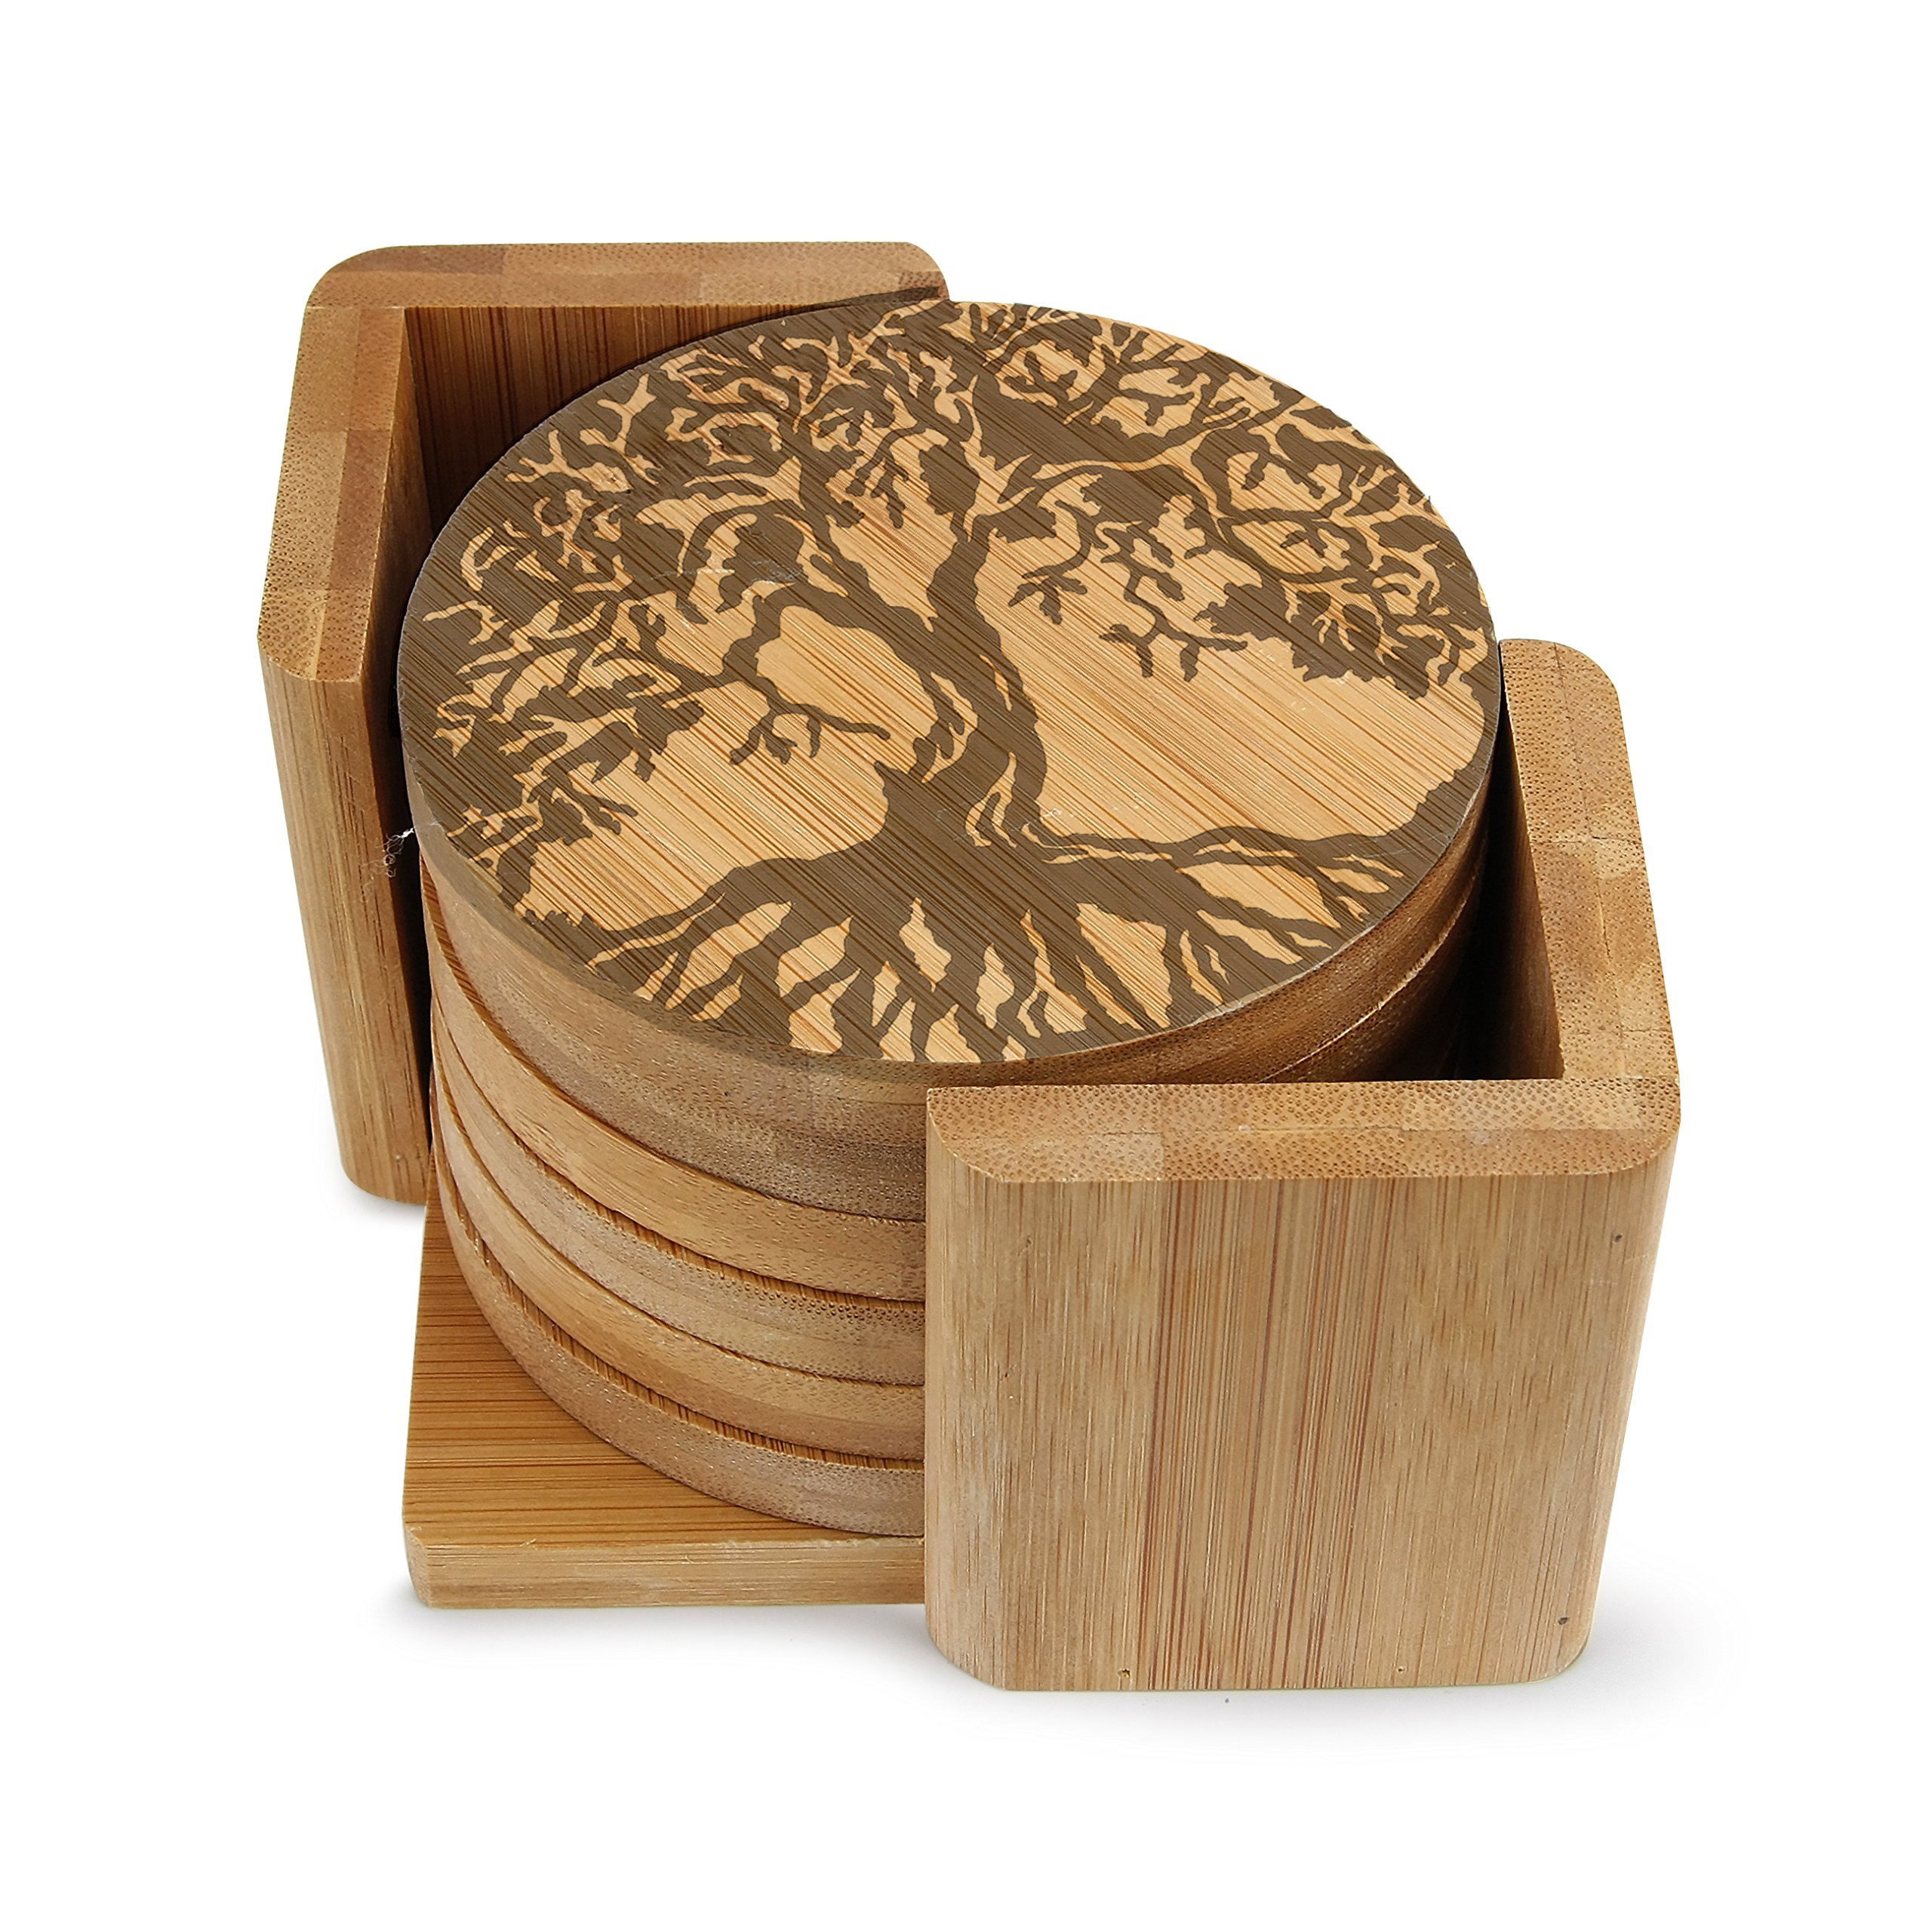 Personalized Engraved Round Wooden Coaster Tree of Life Wedding Gifts, Housewarming, Anniversary Giftset of 6 (Round set of 6C-1019-)